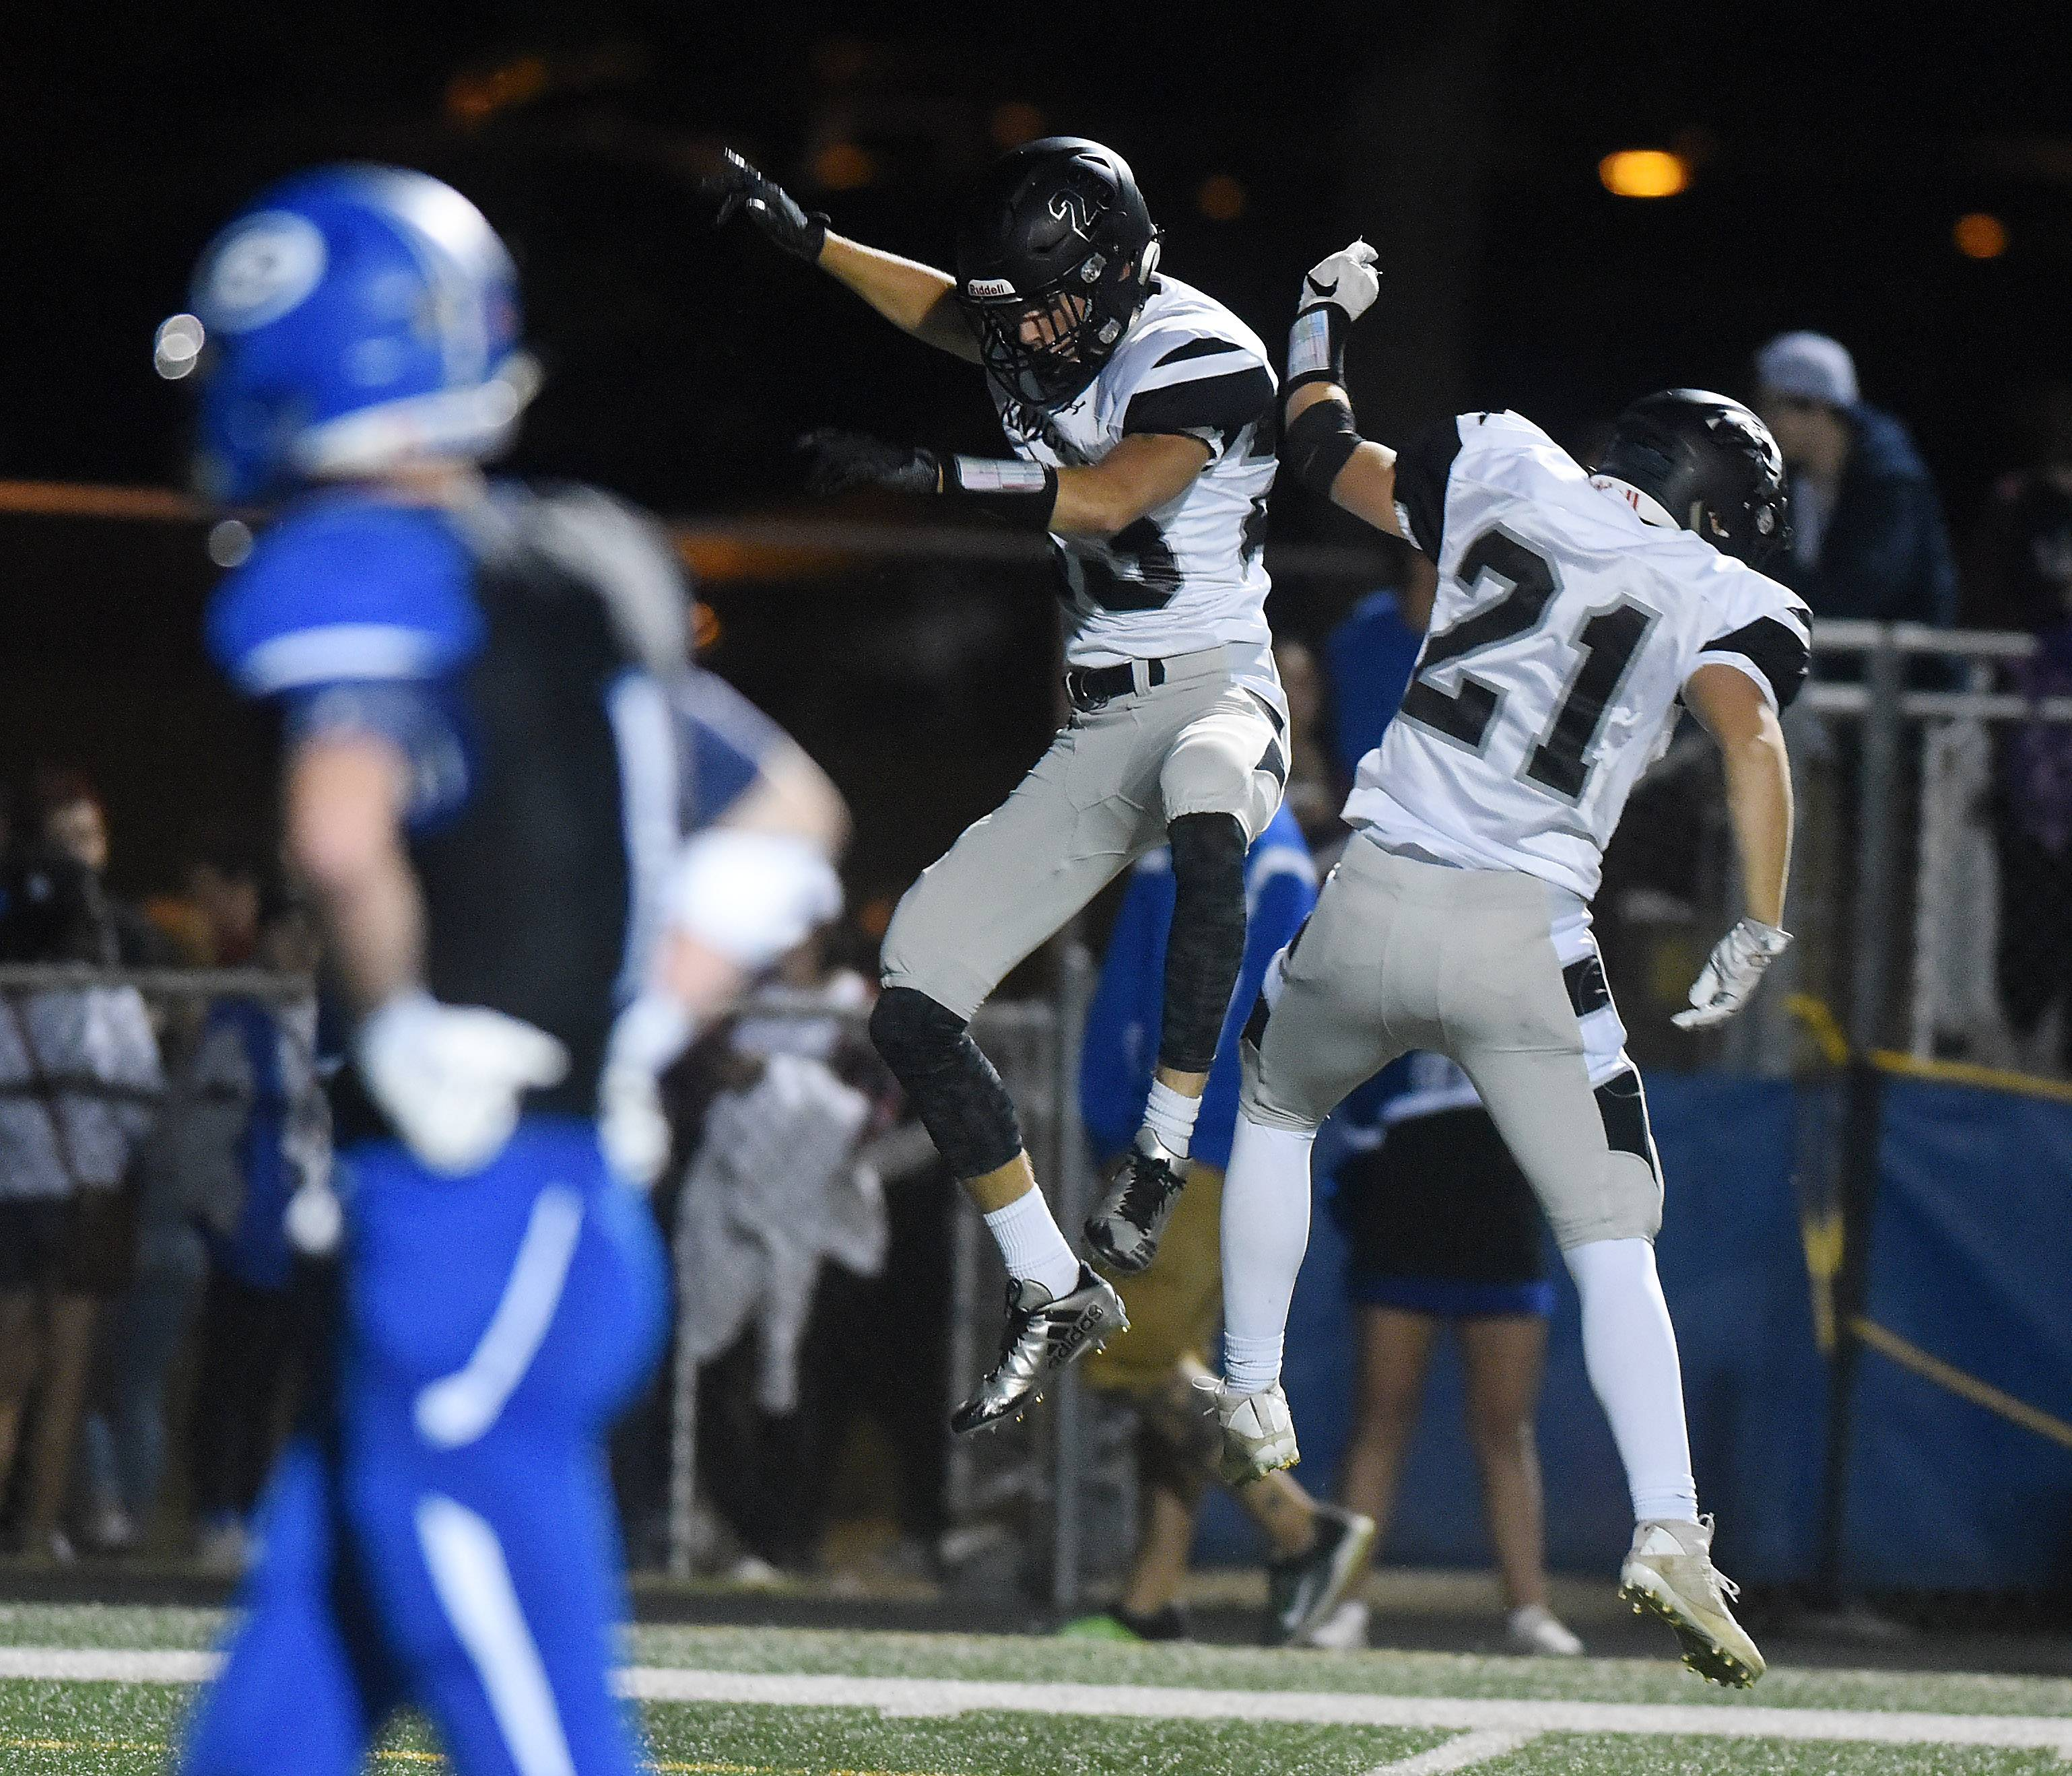 Kaneland's Josh Marczuk (23) celebrates with teammate Alex Moses (21) after a touchdown during Friday's game in Geneva.